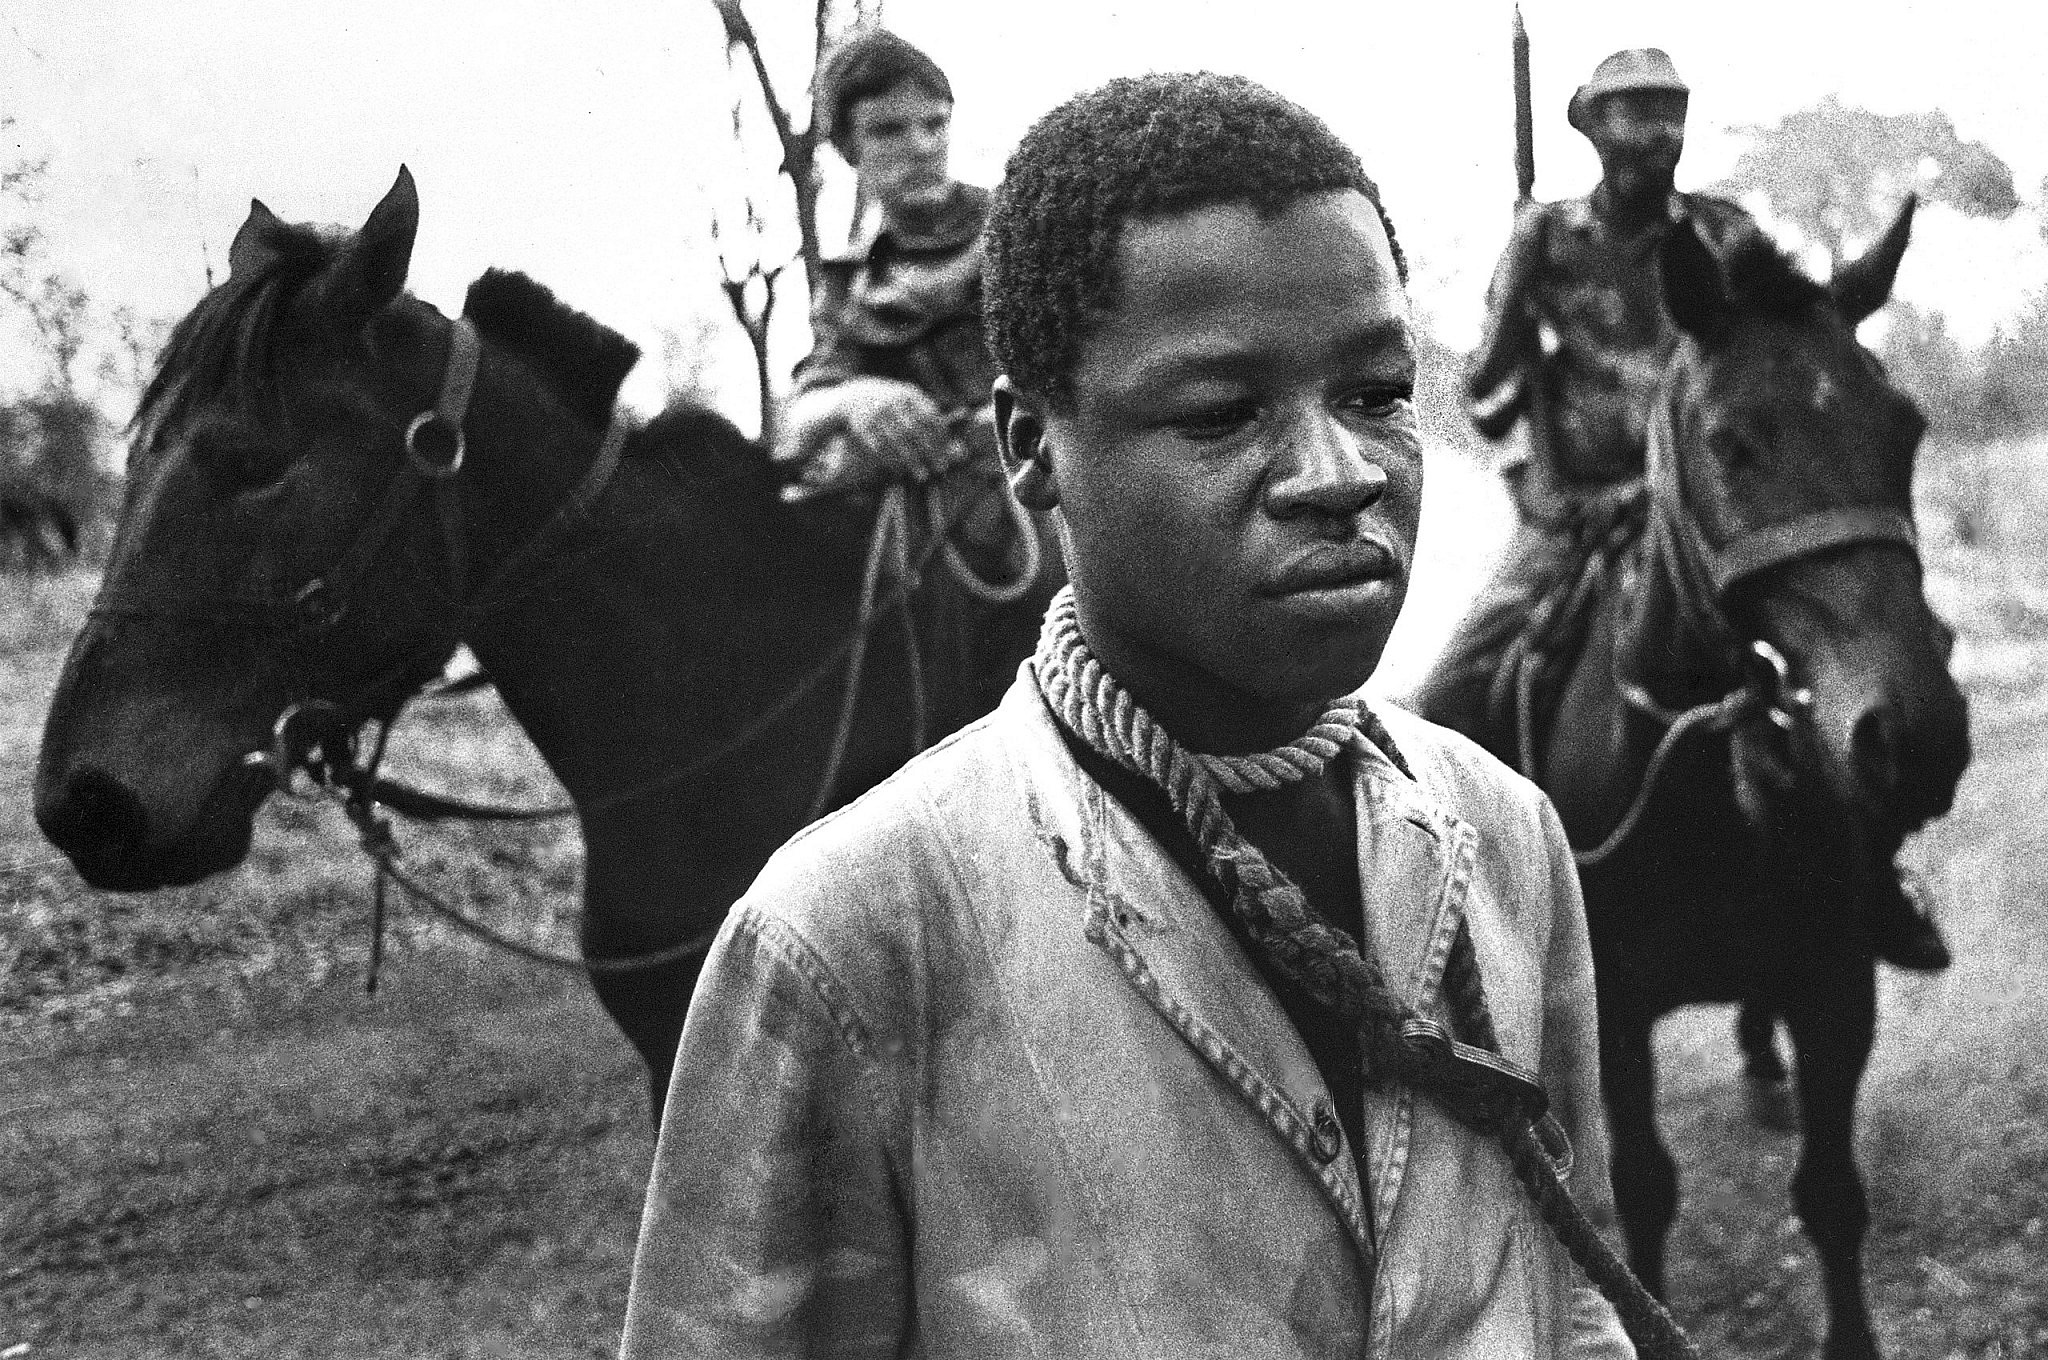 A prisoner taken by Rhodesian Security Forces in the fall of 1977 stands with a rope around his neck. (J. Ross Baughman)